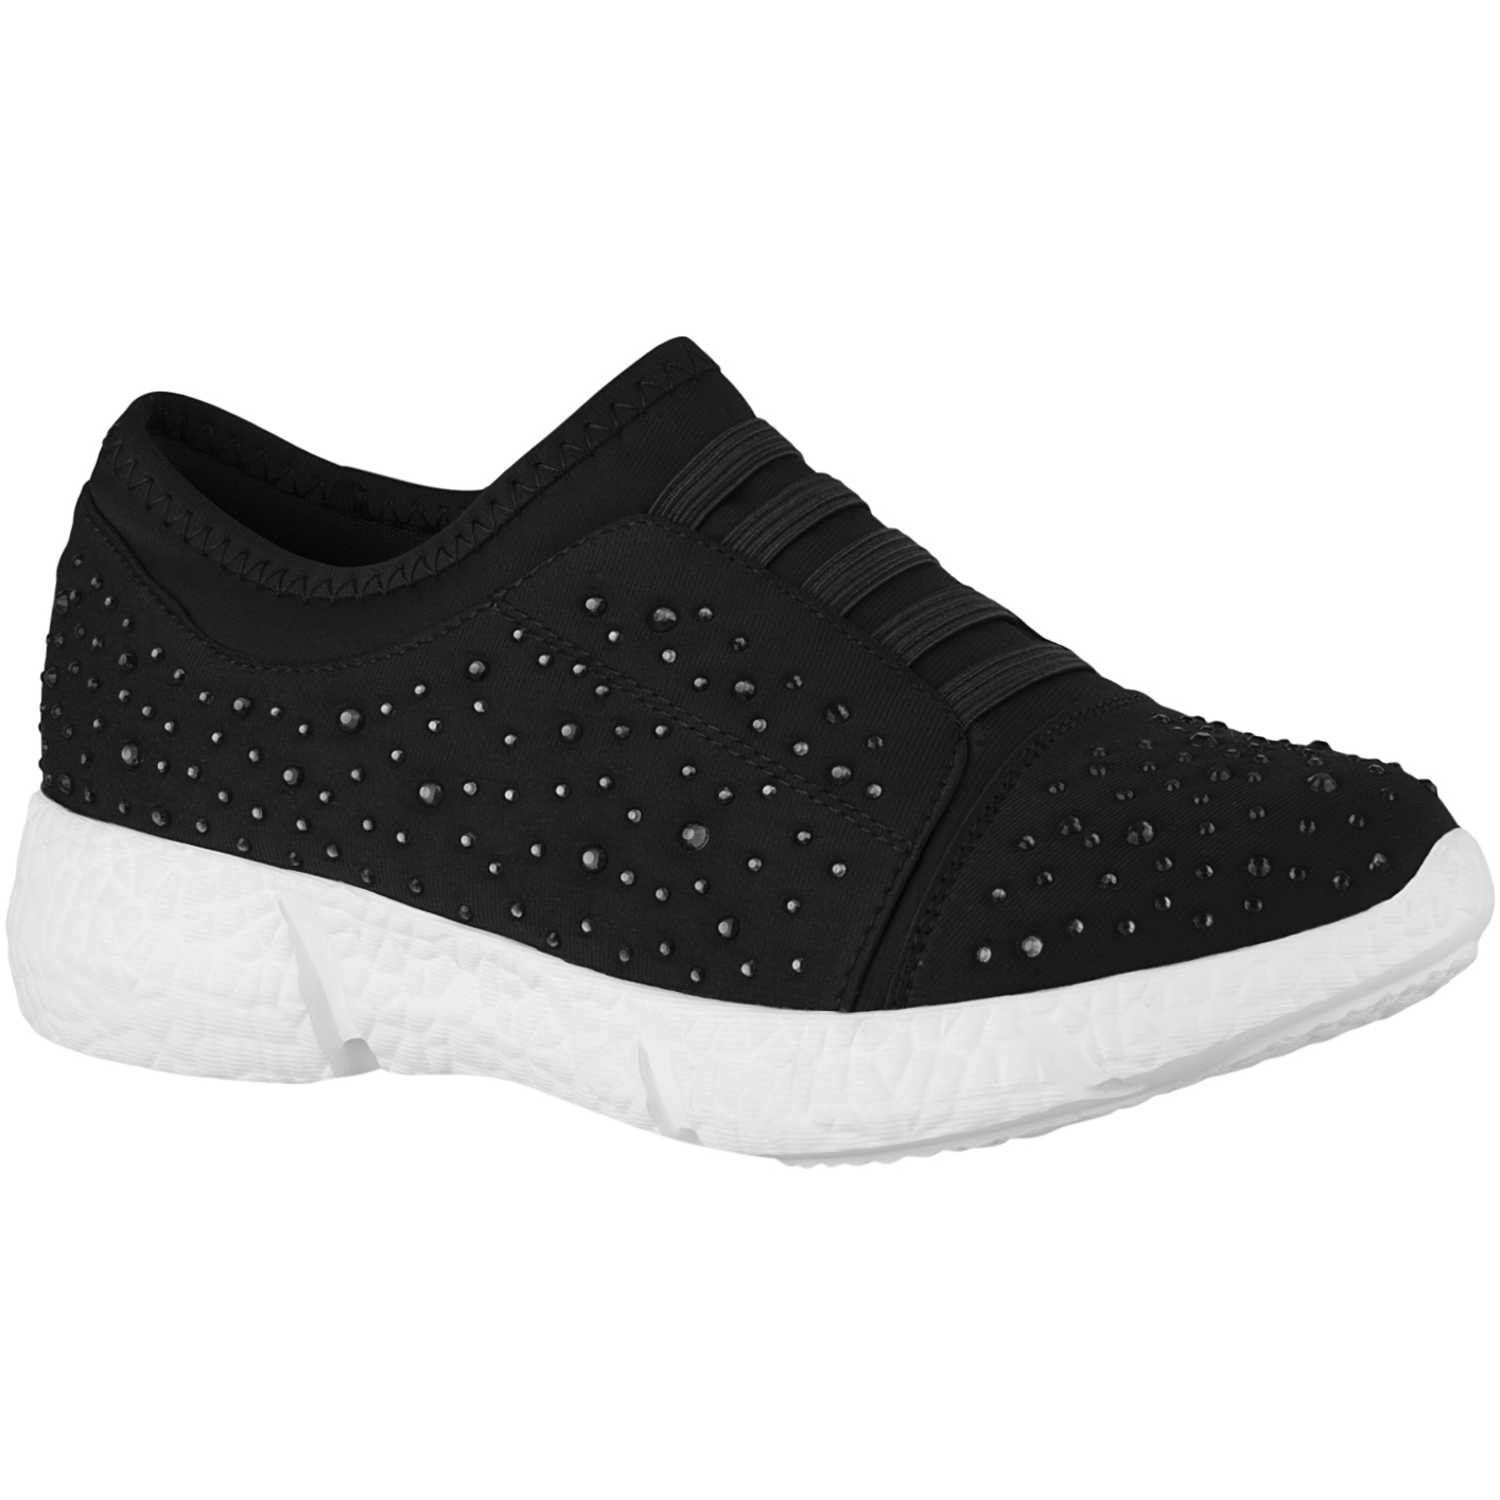 Platanitos z-6089 Negro Zapatillas Fashion